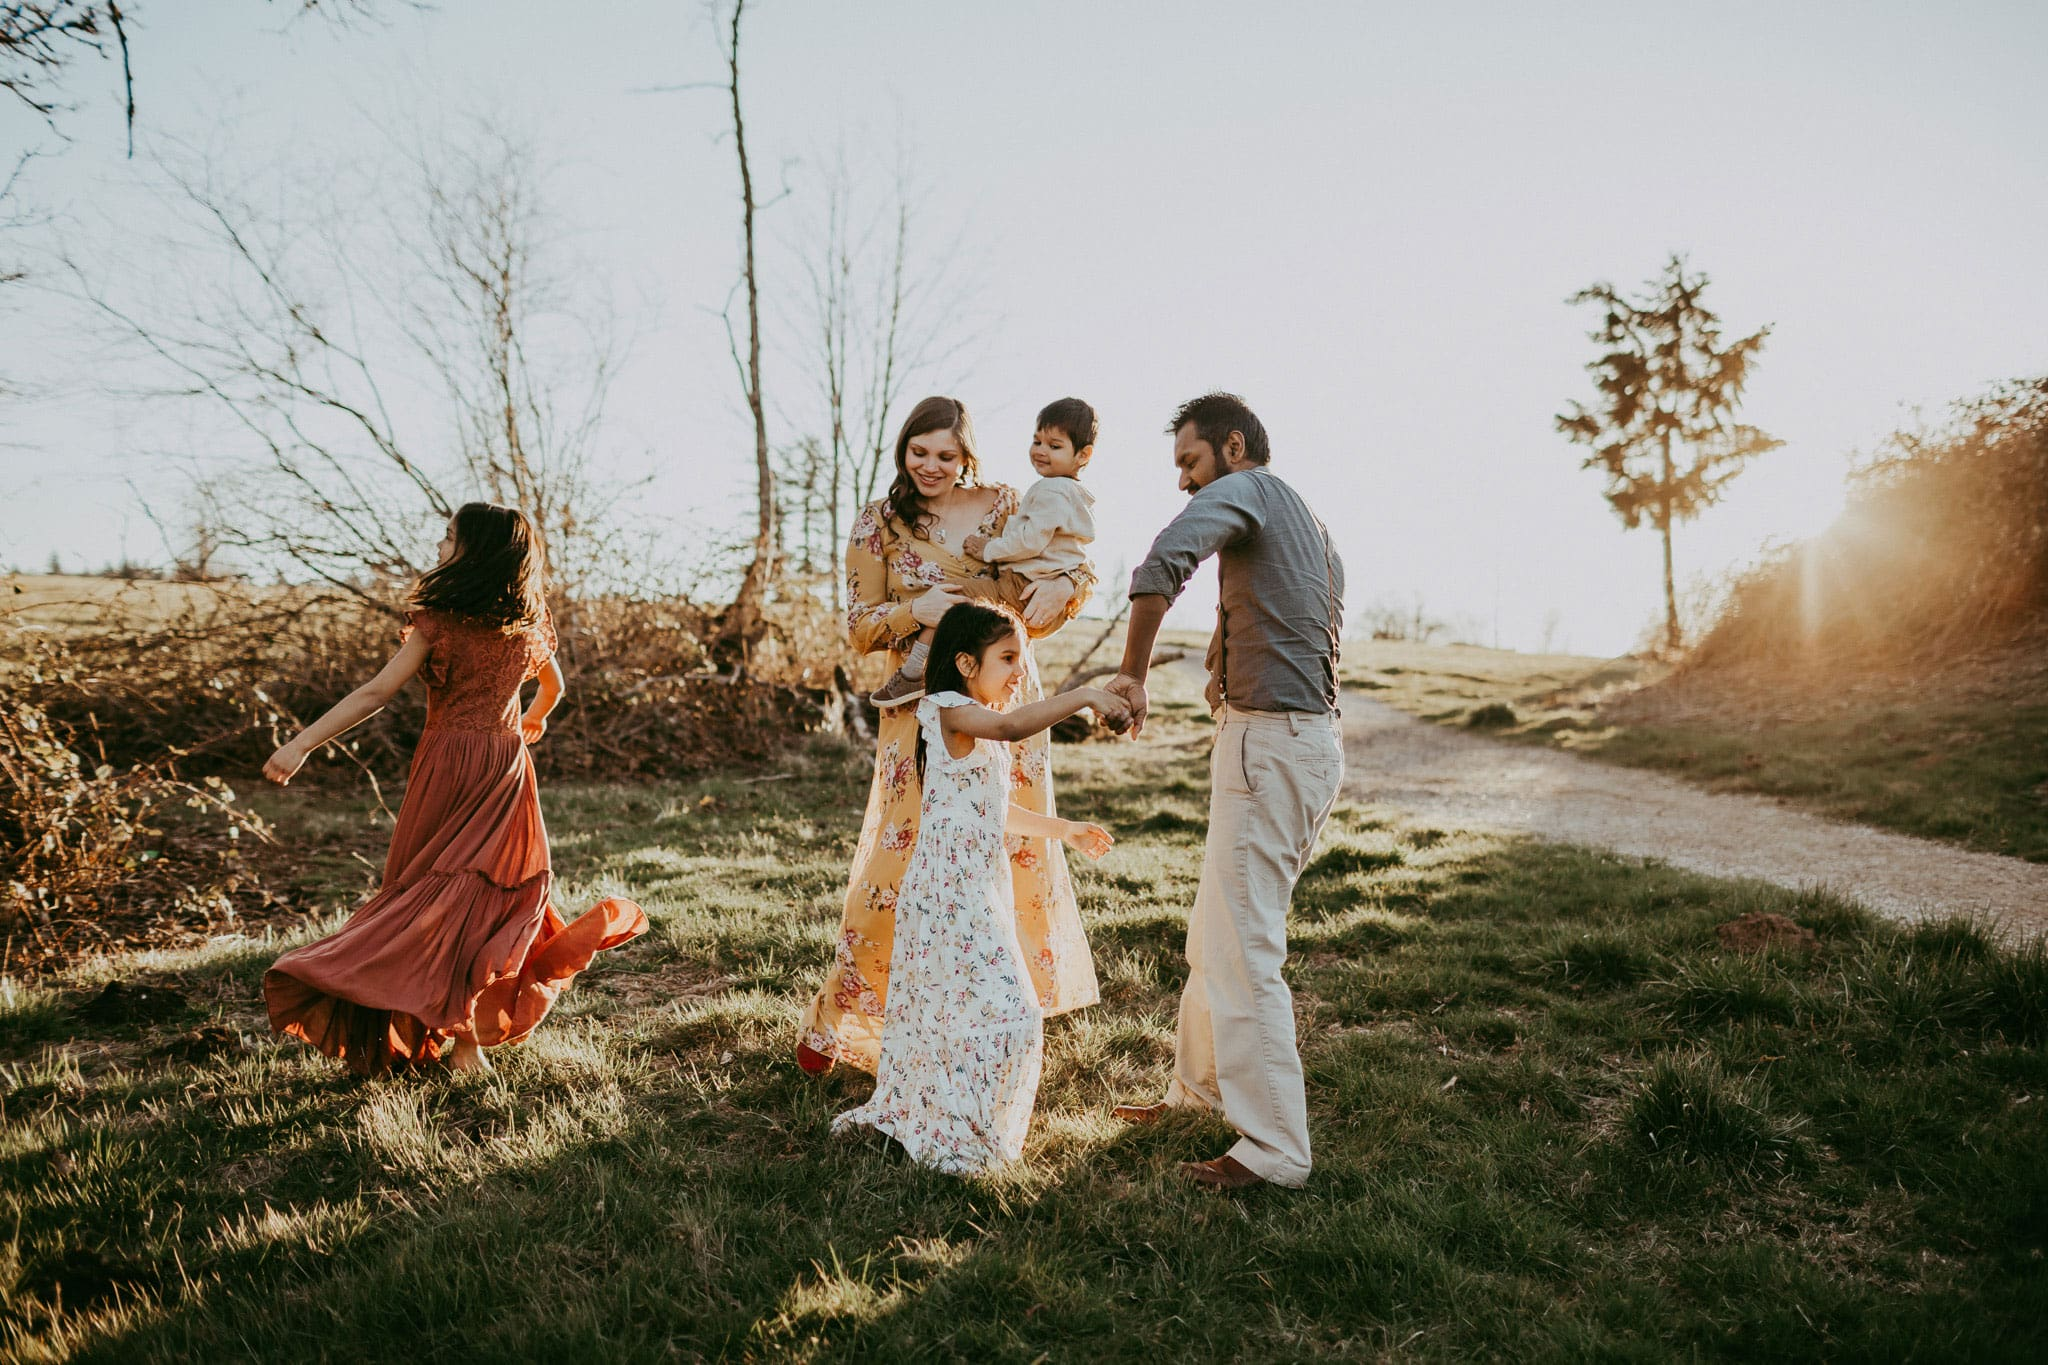 family dancing in the sun during their lifestyle maternity photography session